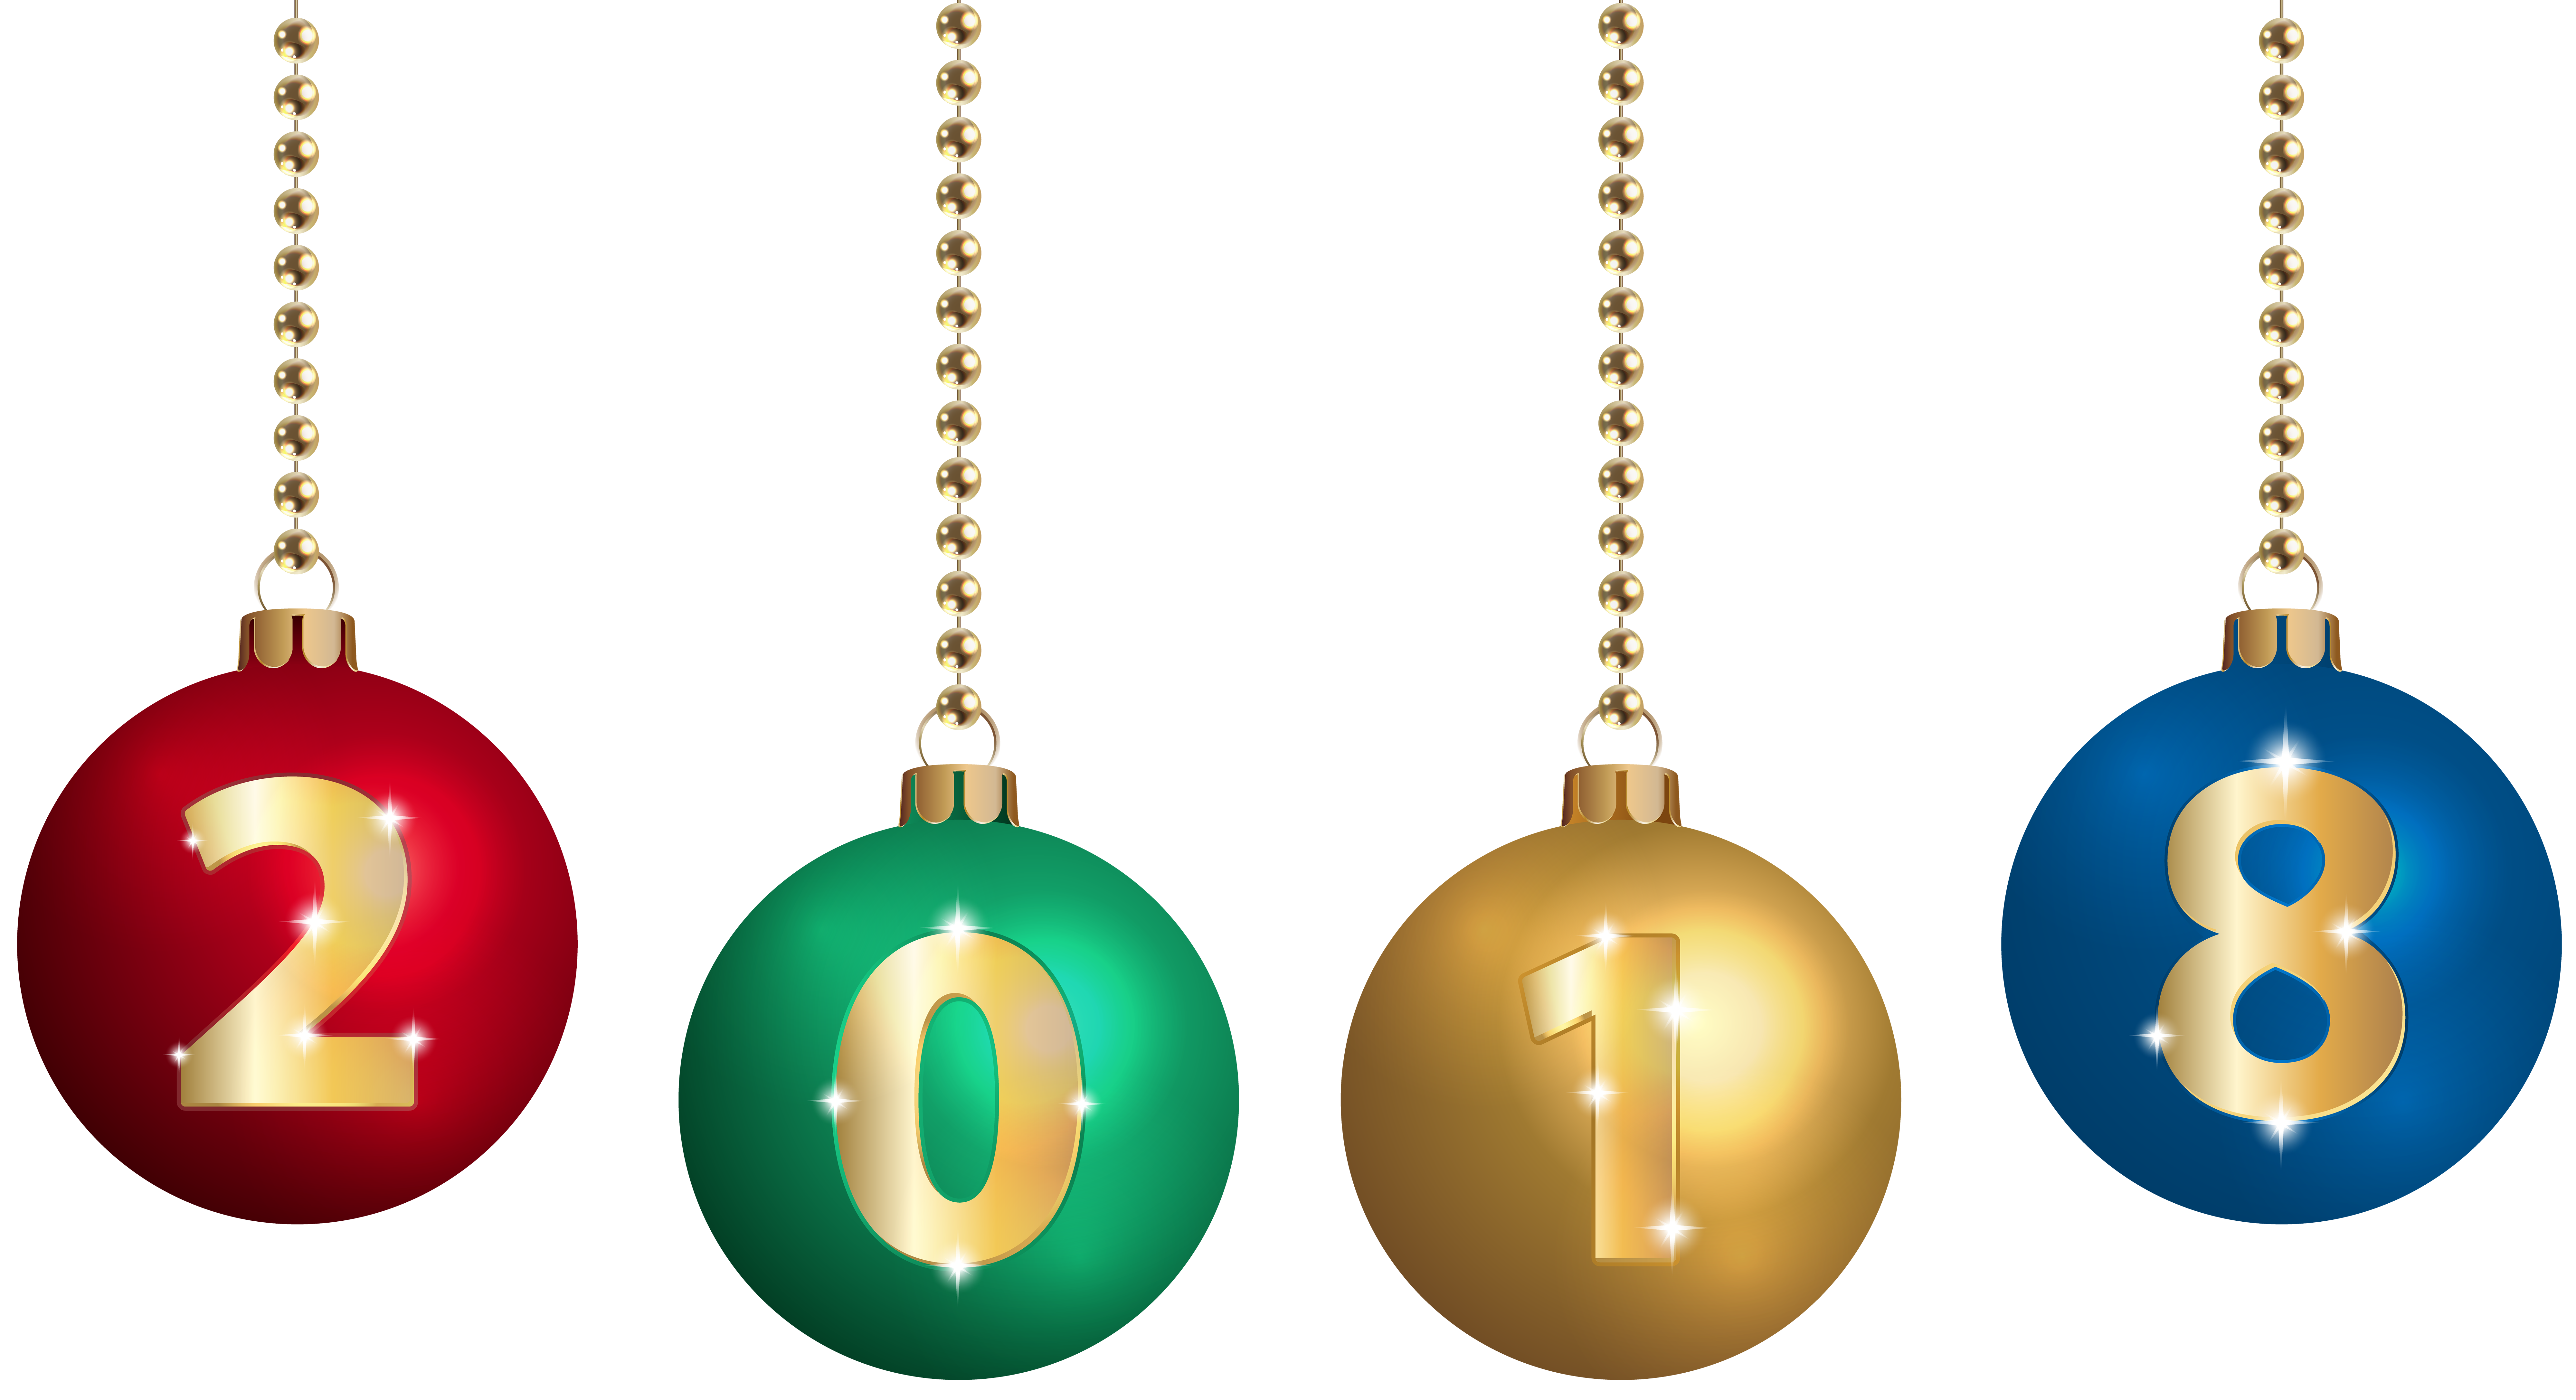 Hanging christmas ornaments clipart vector transparent Christmas Ball Ornaments Clipart at GetDrawings.com | Free for ... vector transparent